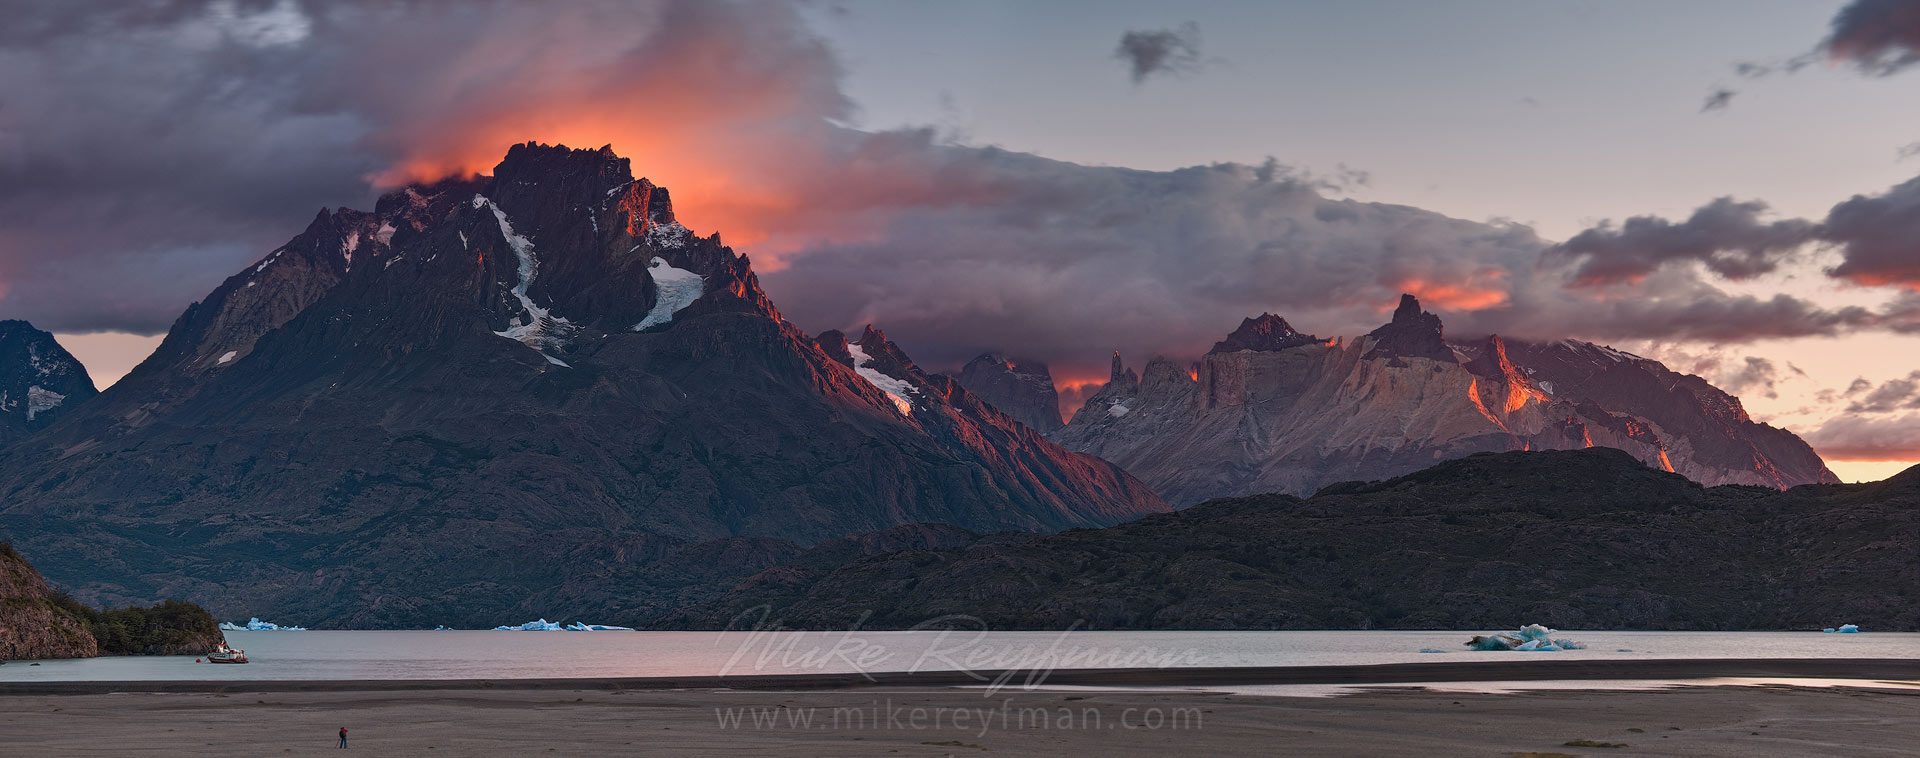 Sunrise at Lago Gray. Cerro Paine Grande and Cuernos del Paine in dramatic sunrise lighting. Torres del Paine National Park, Magallanes and Antartica Chilena Region XII, Patagonia, Chile. - Torres-Del-Paine-National-Park-Patagonia-Chile - Mike Reyfman Photography